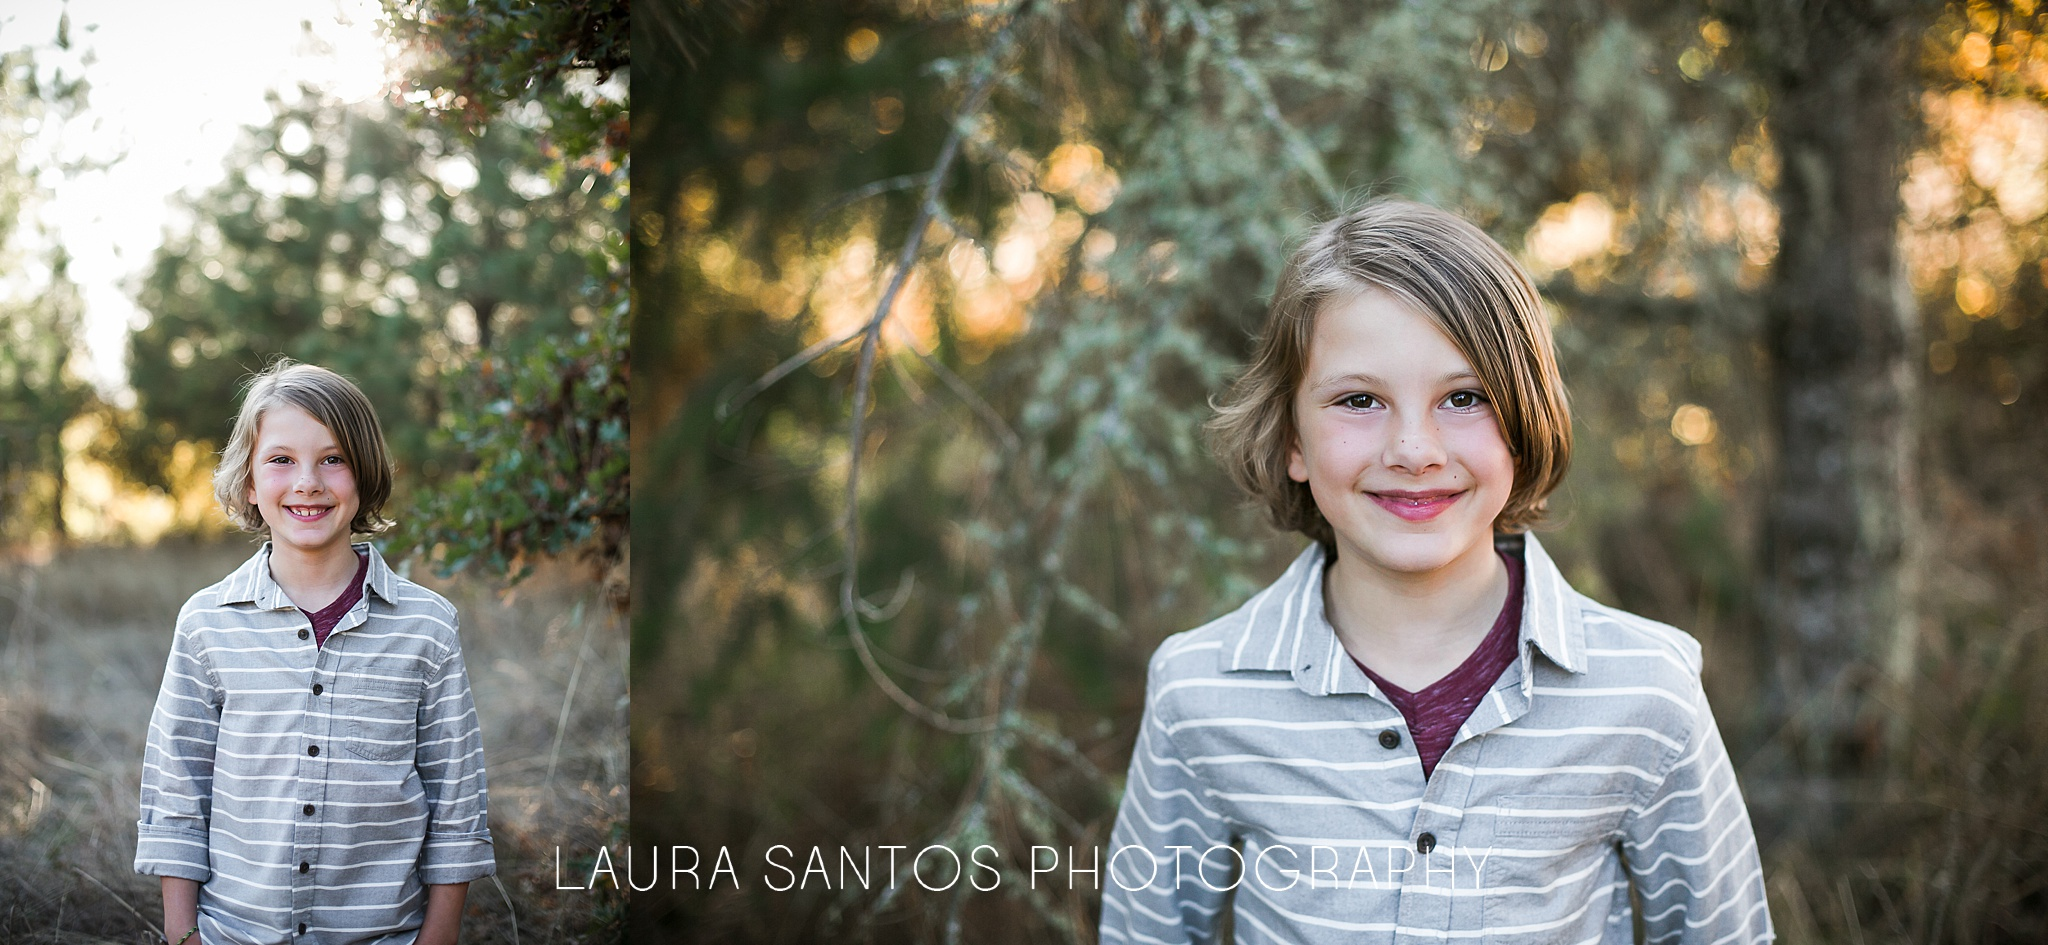 Laura Santos Photography Portland Oregon Family Photographer_0893.jpg